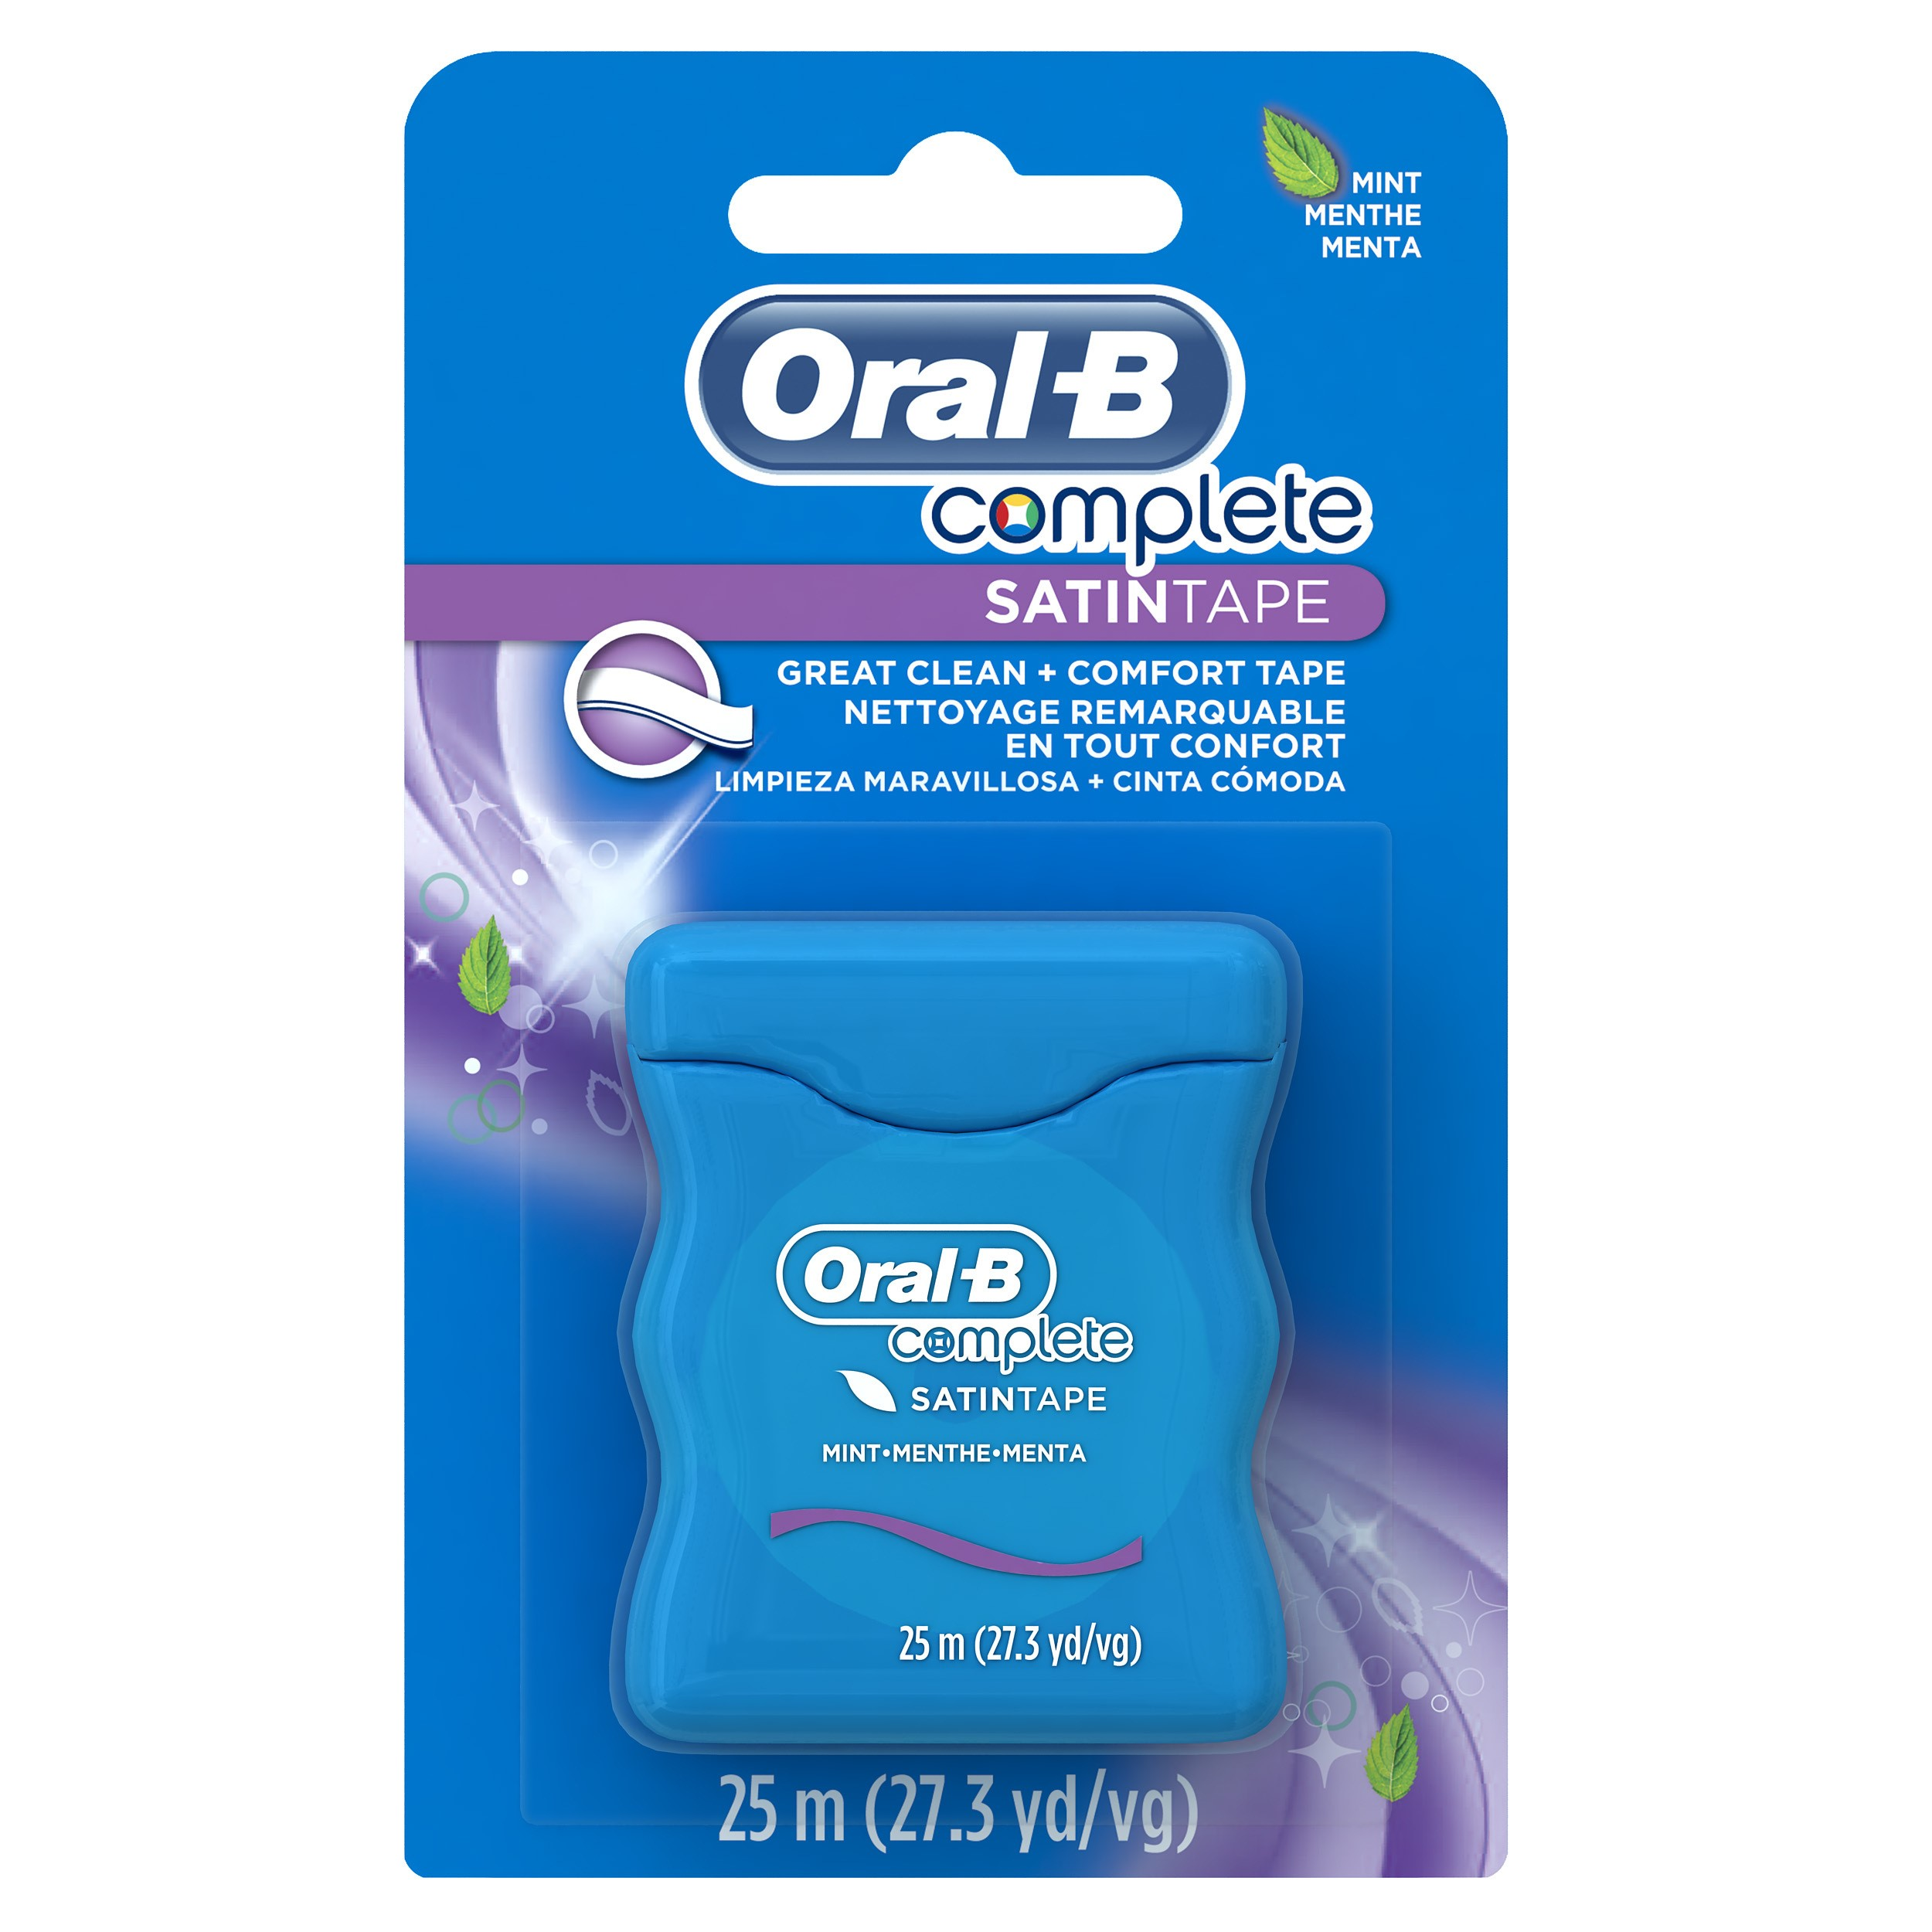 Oral-B Complete SatinTape Dental Floss, Mint, 25 M